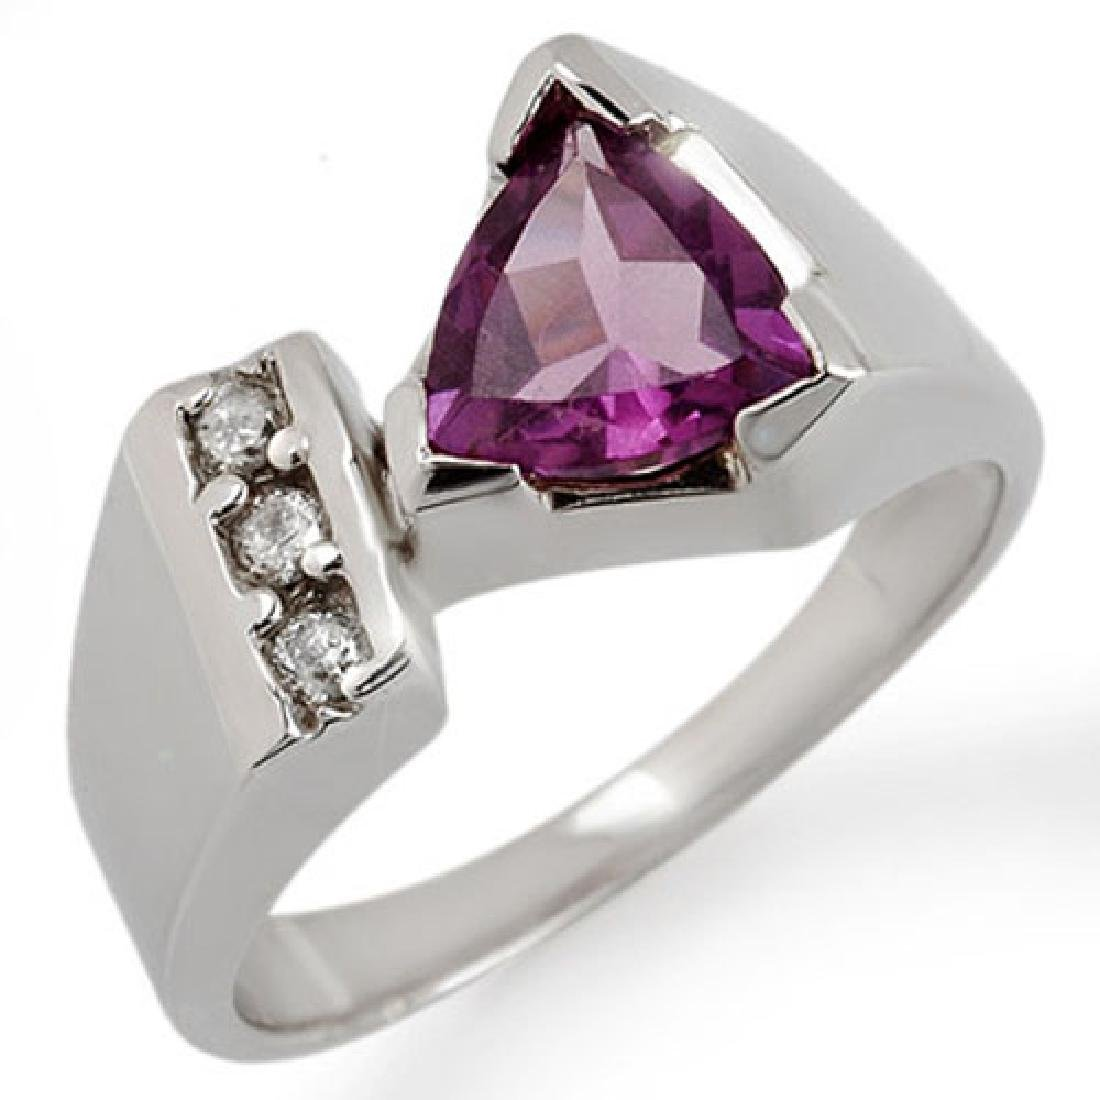 1.0 CTW Amethyst & Diamond Ring 10K White Gold